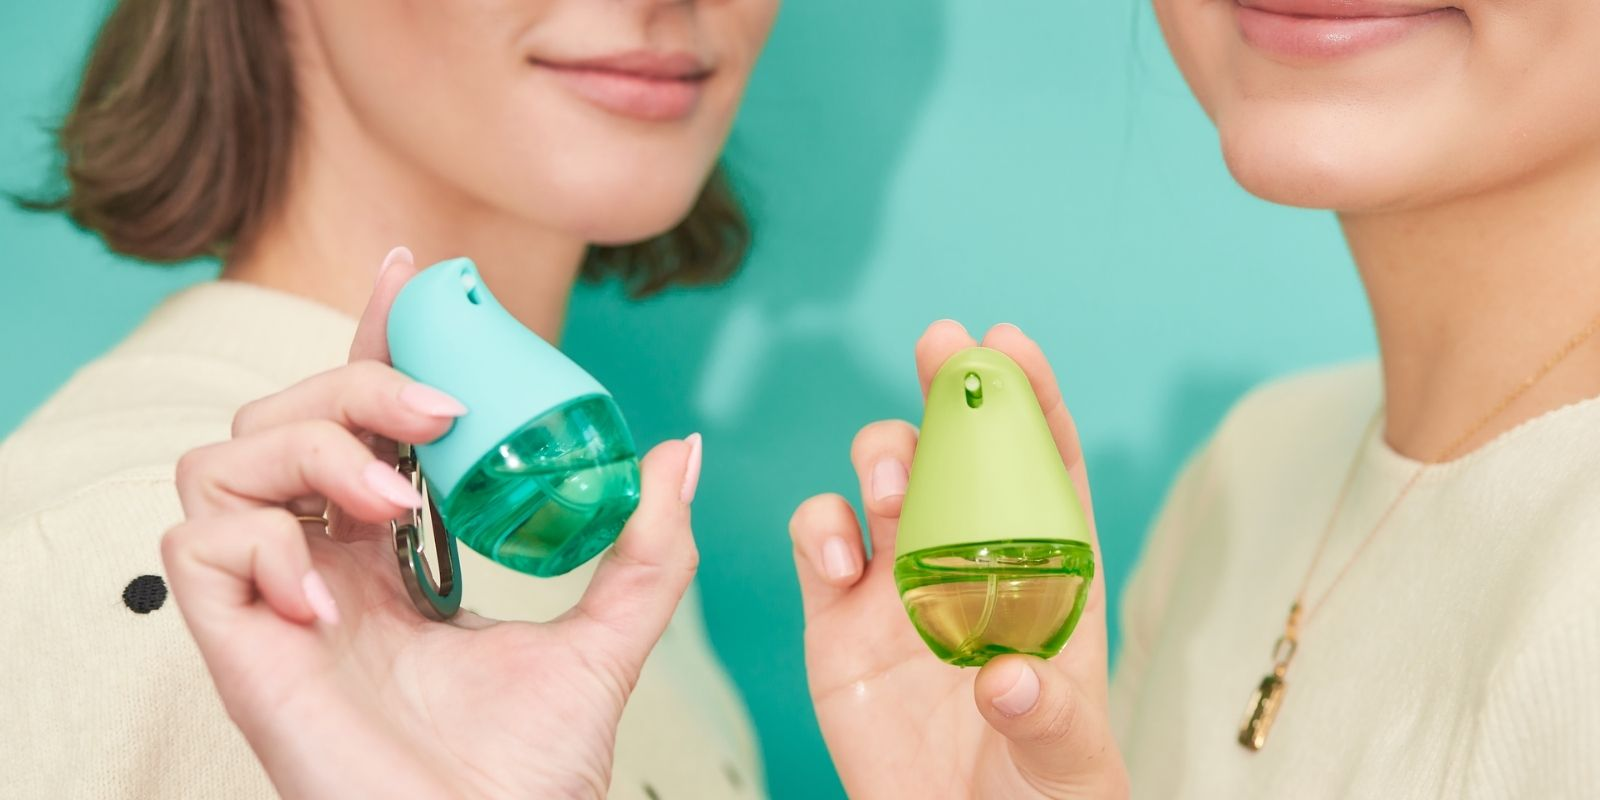 Items Pictured: Hands holding OLIKA Spray and Clip-on Hydrating Hand Sanitizers in Mint Citrus and Cucumber Basil